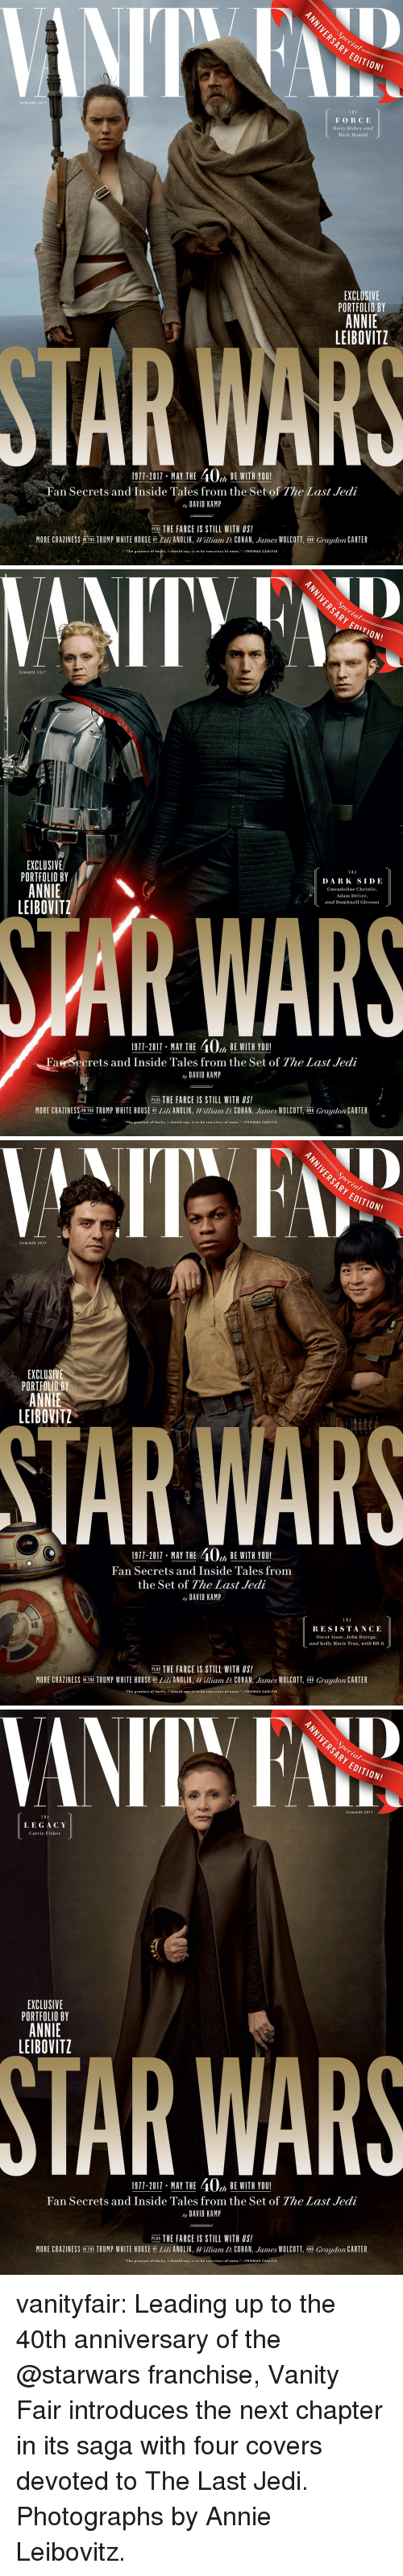 "Adam Driver, Carrie Fisher, and Daisy Ridley: ARY  EDITION!  SUMMER 2017  THE  FORCE  Daisy Ridley and  Mark Hamill  EXCLUSIVE  PORTFOLIO BY  ANNIE  LEIBOVITZ  1911-2011, MAY THE 40% BEWITH YOU!  Fan Secrets and Inside Tales from the Set of The Last Jedi  ay DAVID KAMP  PLUS THE FARCE IS STILL WITH US!  MORE CRAZINESS NTHE TRUMP WHITE HOUSE ili ANOLIK, William D. COHAN, James WOLCOTT, AND Graydon CARTER  The greatest of faults, I should say, is to be conscious of none.THOMAS CARLYLE   SUMMER 2017  EXCLUSIVE  PORTFOLIO BY  ANNIE  LEIBOVITZ  DARK SIDE  Gwendoline Christie,  Adam Driver  and Domhnall Gleeson  WAR  1911-2017 MAY THE 40, BE WITH YOU!  Fan Secrets and Inside Tales from the Set of The Last Jedi  ay DAVID KAMP  PLUS THE FARCE IS STILL WITH US!  MORE CRAZINESS/IN THE TRUMP WHITE HOUSE B Lili ANOLIK, William D. COHAN, James WOLCOTT, AND Graydon CARTER  ""The greatest of faults, I should say, is to be conscious of none.""-THOMAS CARLYLE   ARY  EDITION!  SUMMER 2017  EXCLUSI  PORTFOLIO BY  ANNIE  LEIBOVITZ  TAR WARS  1911-2011 . MAY THE 40% BE WITH YOU!  Fan Secrets and Inside Tales from  the Set of The Last Jedi  ay DAVID KAMP  1 HE  RESISTANCE  Oscar Isaac, John Boyega,  and Kelly Marie Tran, with BB-8  PLUS THE FARCE IS STILL WITH US!  MORE CRAZINESS İN THE TRUMP WHITE HOUSE BY Lil ANOLIK, William D. COHAN James WOLCOTT AND Graydon CARTER  The greatest of faults, I should say, is to be conscious of none.""-THOMAS CARLYLE   Decial  ARY EDITION!  SUMMER 2017  T H E  LEGACY  Carrie Fisher  EXCLUSIVE  PORTFOLIO BY  ANNIE  LEIBOVITZ  STAR WARS  1971-2011 MAY THE 40, BE WITH YOU!  Fan Secrets and Inside Tales from the Set of The Last Jedi  ay DAVID KAMIP  PLIE THE FARCE IS STILL WITH US!  ER  MORE CRAZINESS NTHE TRUMP WHITE HOUSE BY Lili ANOLIK, William D. COHAN, ""lunes WOLCOTT AND Graydon CA  ""The greatest of faults, I should say, is to be conscious of e.-THOMAS CARLYLE vanityfair: Leading up to the 40th anniversary of the @starwars franchise, Vanity Fair introduces the next chapter in its saga with four covers devoted to The Last Jedi.  Photographs by Annie Leibovitz."